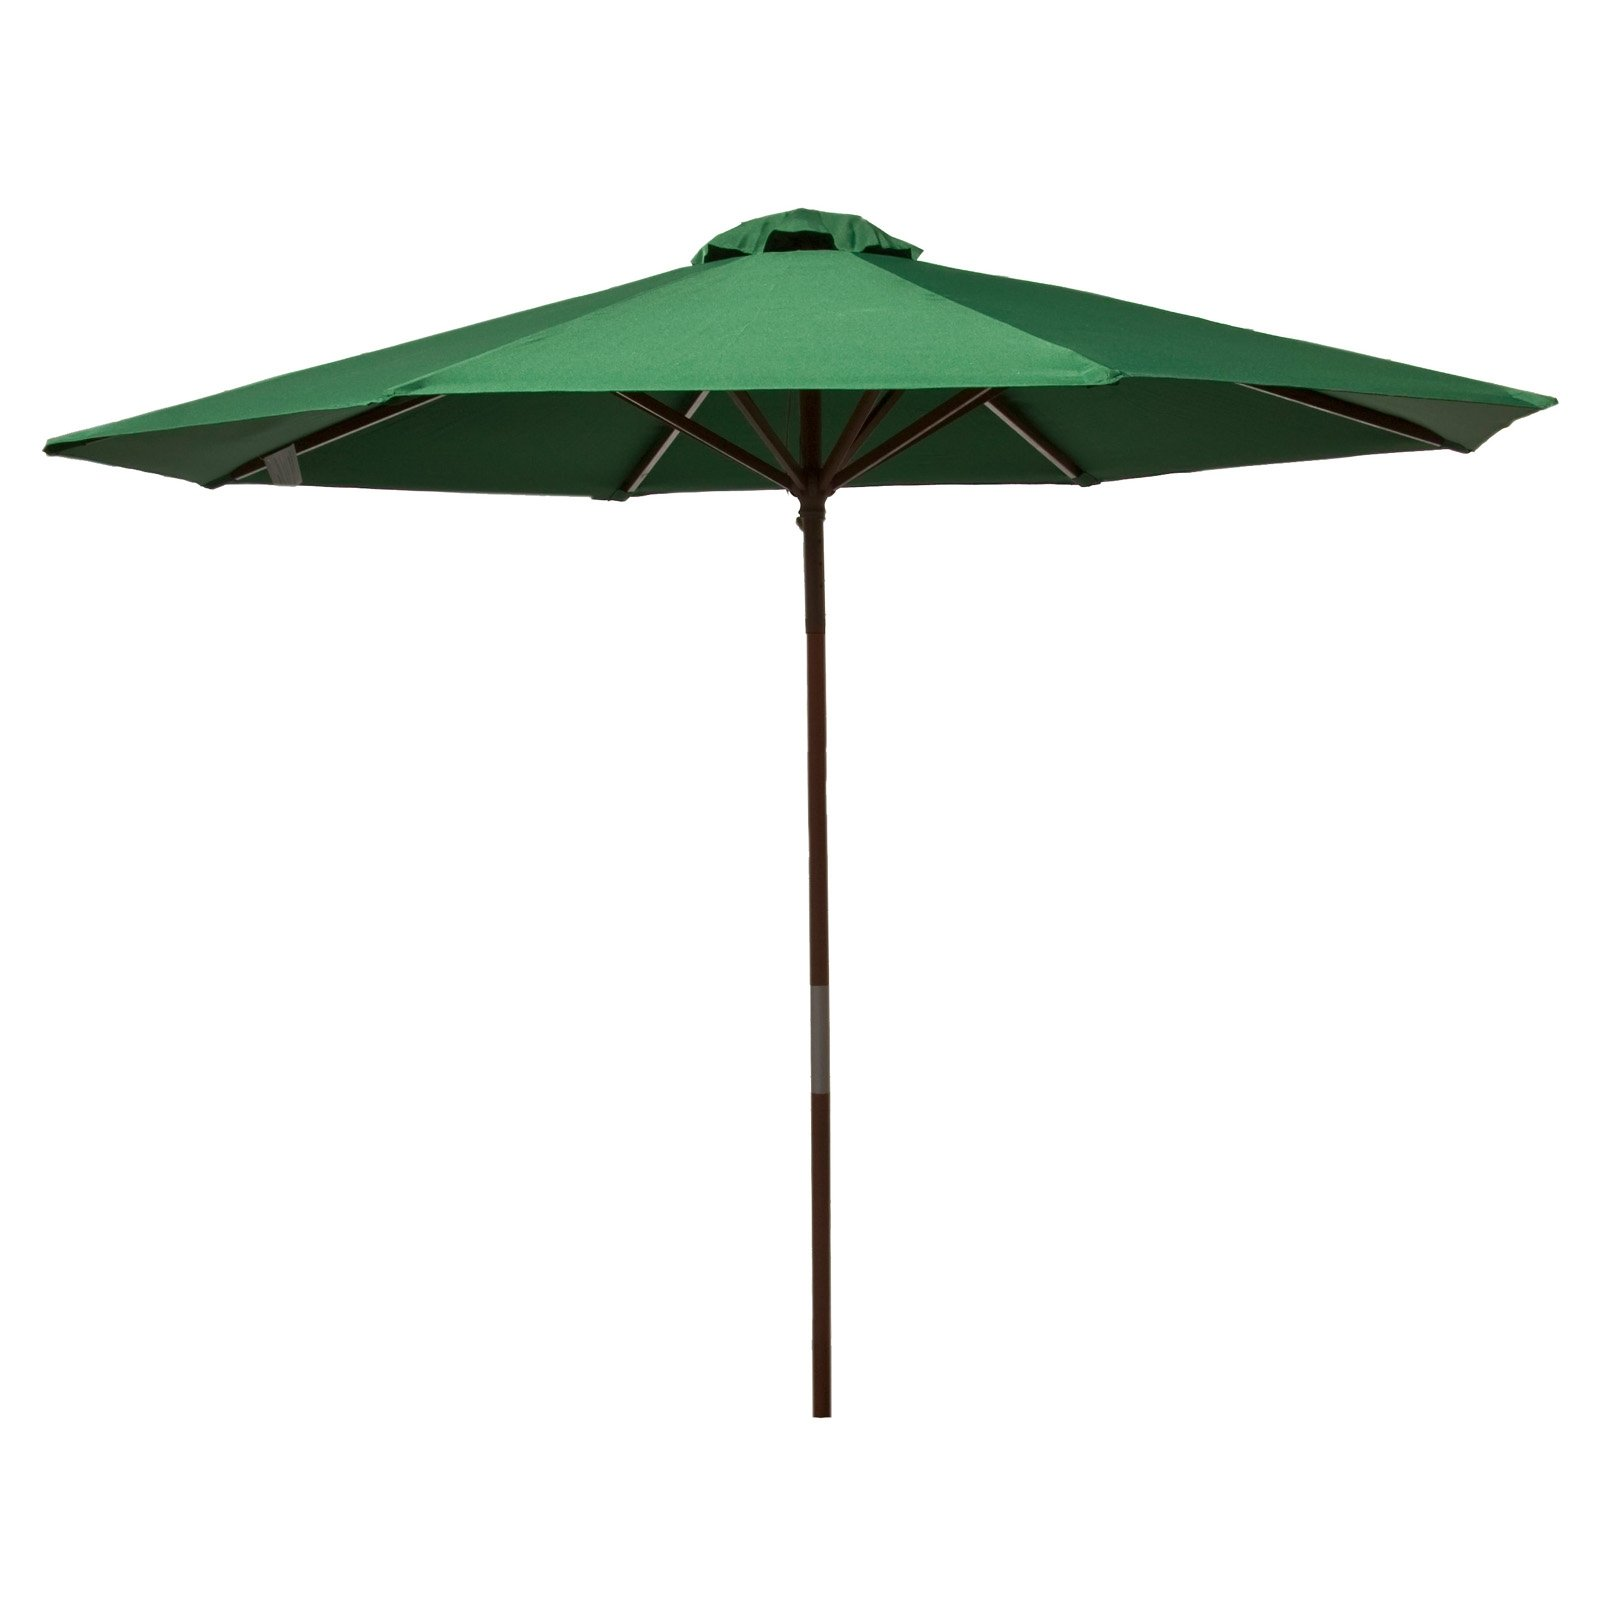 Classic Wood 9 foot Market Patio Umbrella - Green